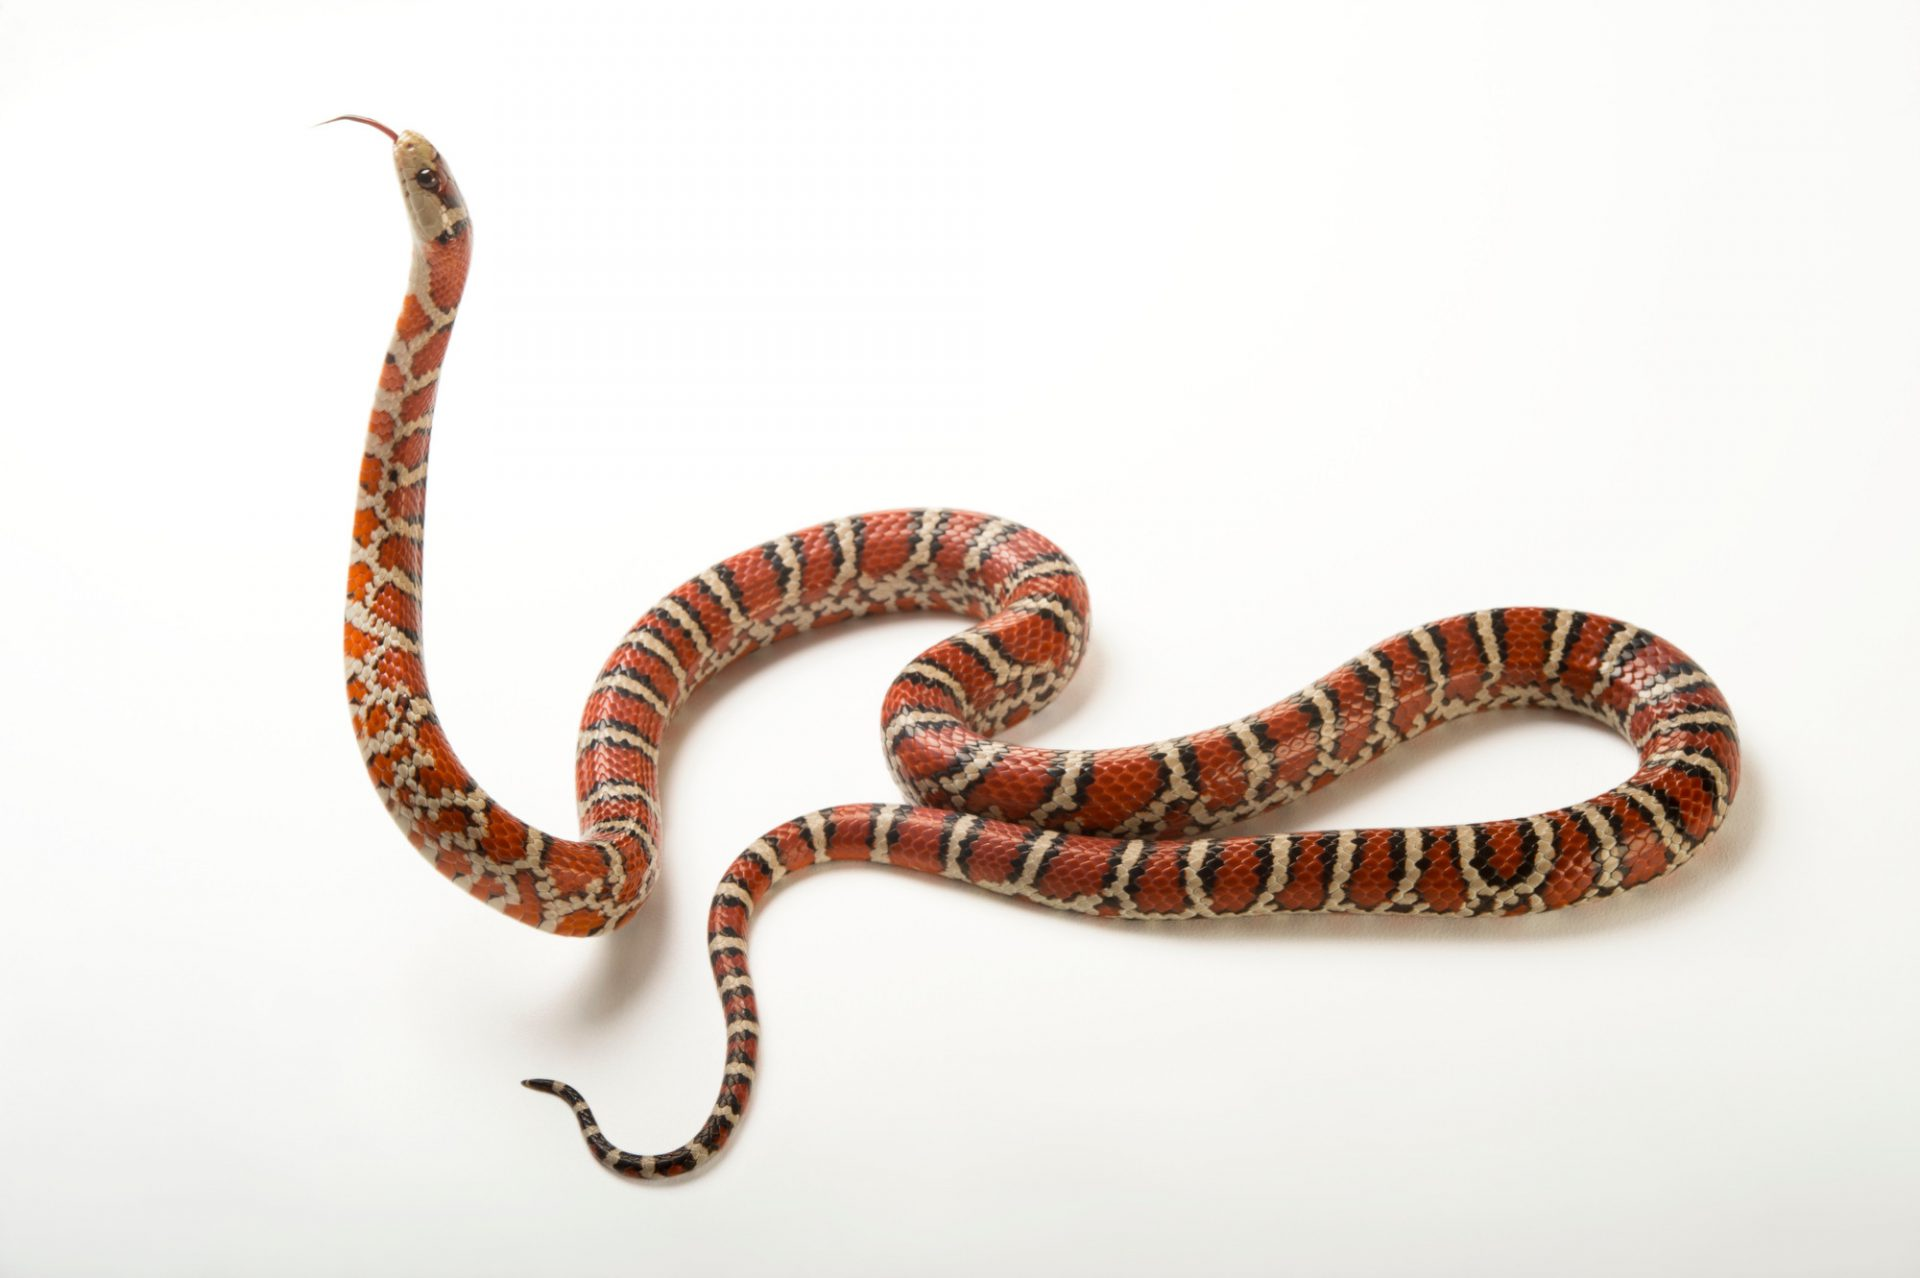 Picture of a Sonoran mountain kingsnake (Lampropeltis pyromelana knoblochi) at the Caldwell Zoo in Tyler, Texas.